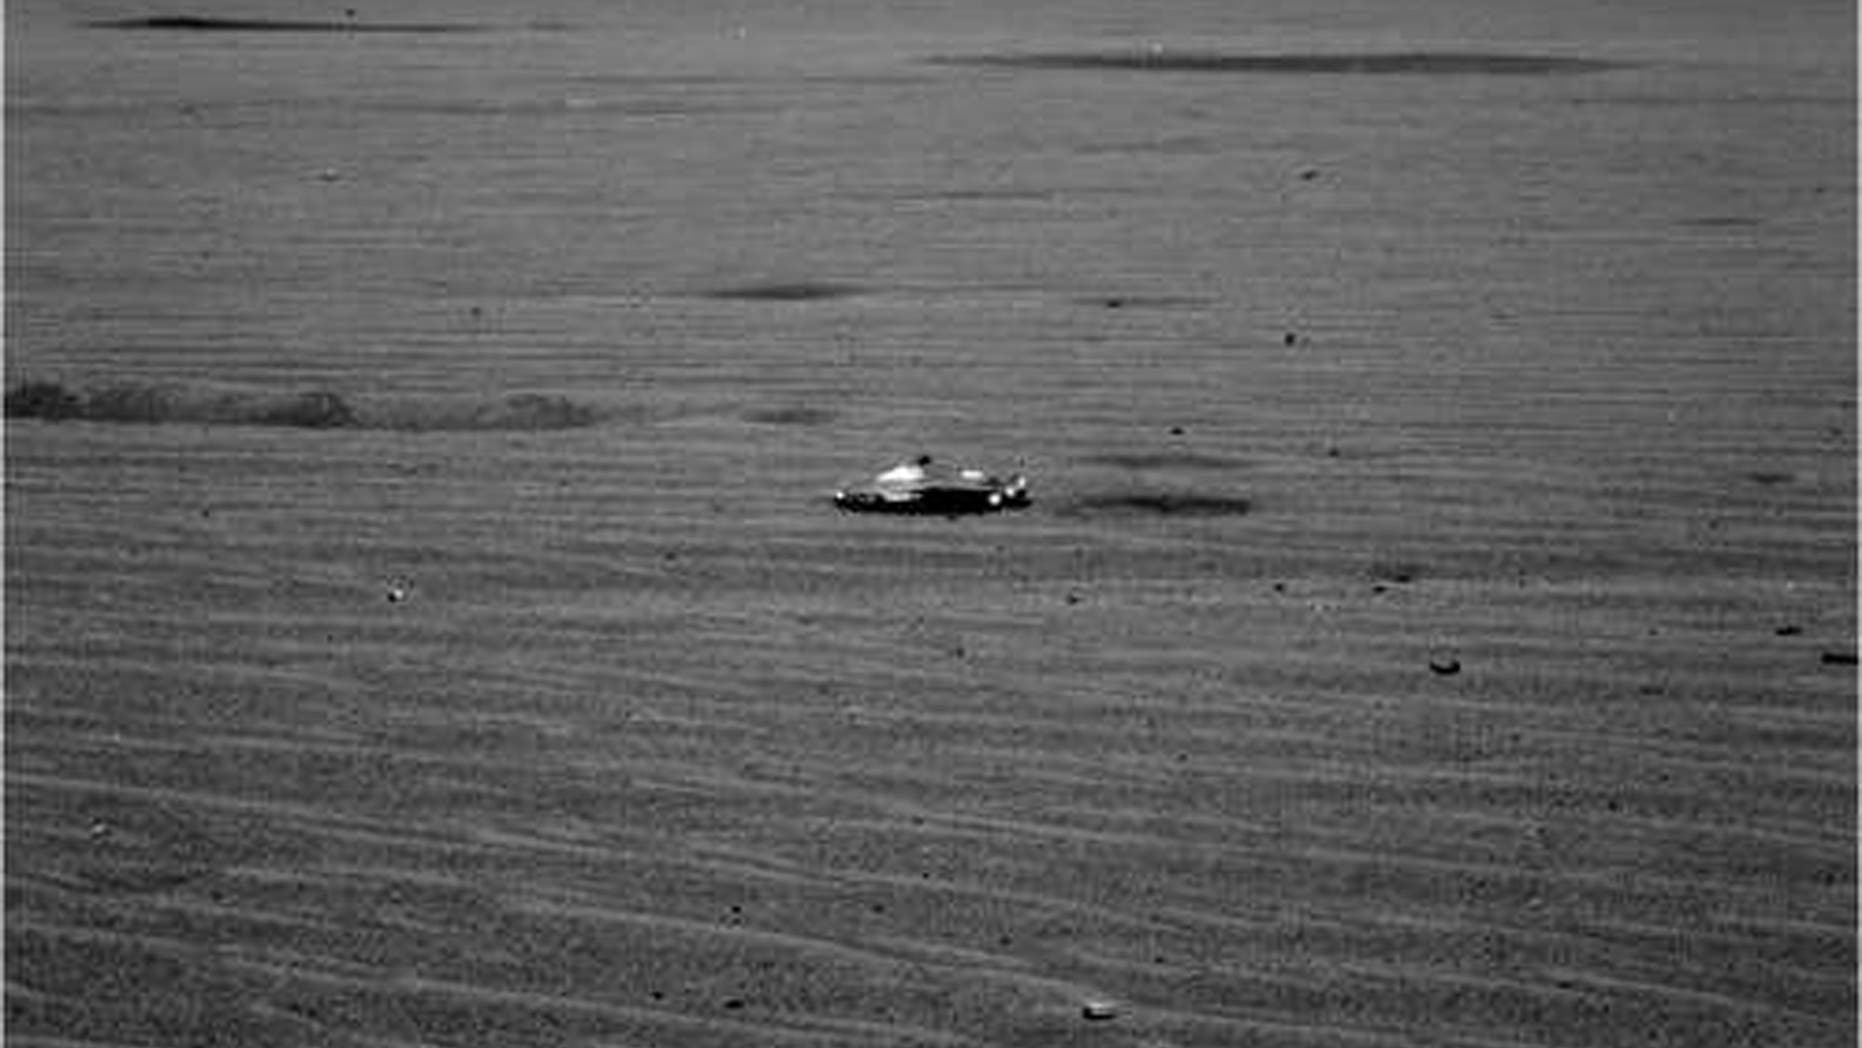 Left Panoramic Camera Non-linearized Full frame EDR acquired on Sol 348 of Opportunity's mission to Meridiani Planum at approximately 12:45:41 Mars local solar time, camera commanded to use Filter 7 (432 nm). NASA/JPL/Cornell